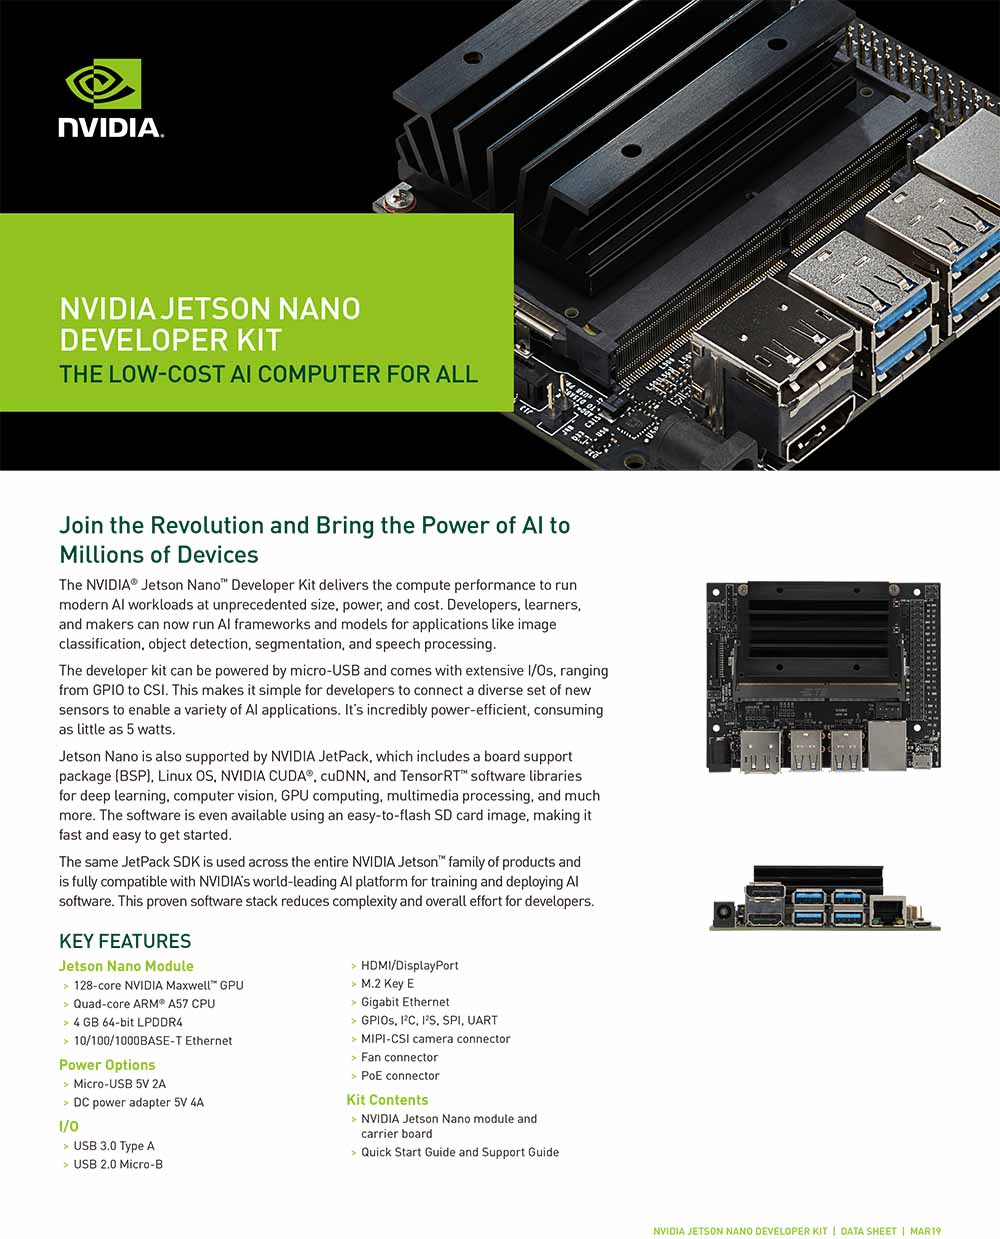 NVIDIA Jetson Nano Developer Kit for Artiticial Intelligence Deep Learning  AI Computing,Support PyTorch, TensorFlow Jetbot